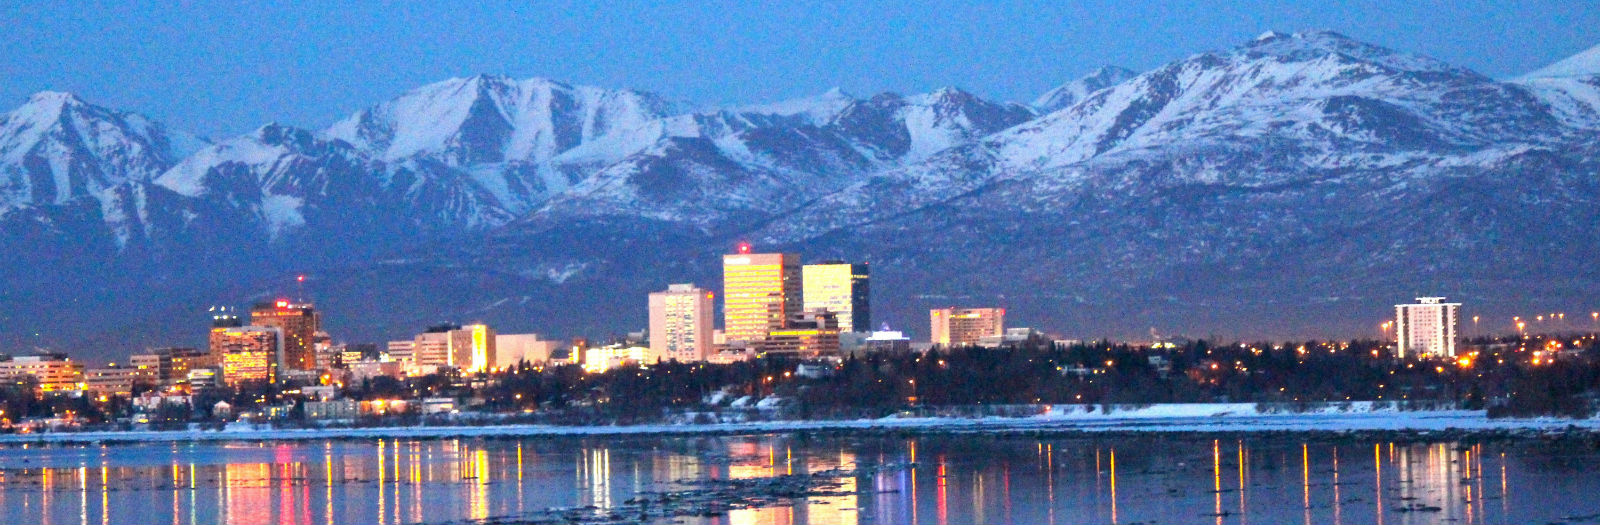 anchorage-article.jpg